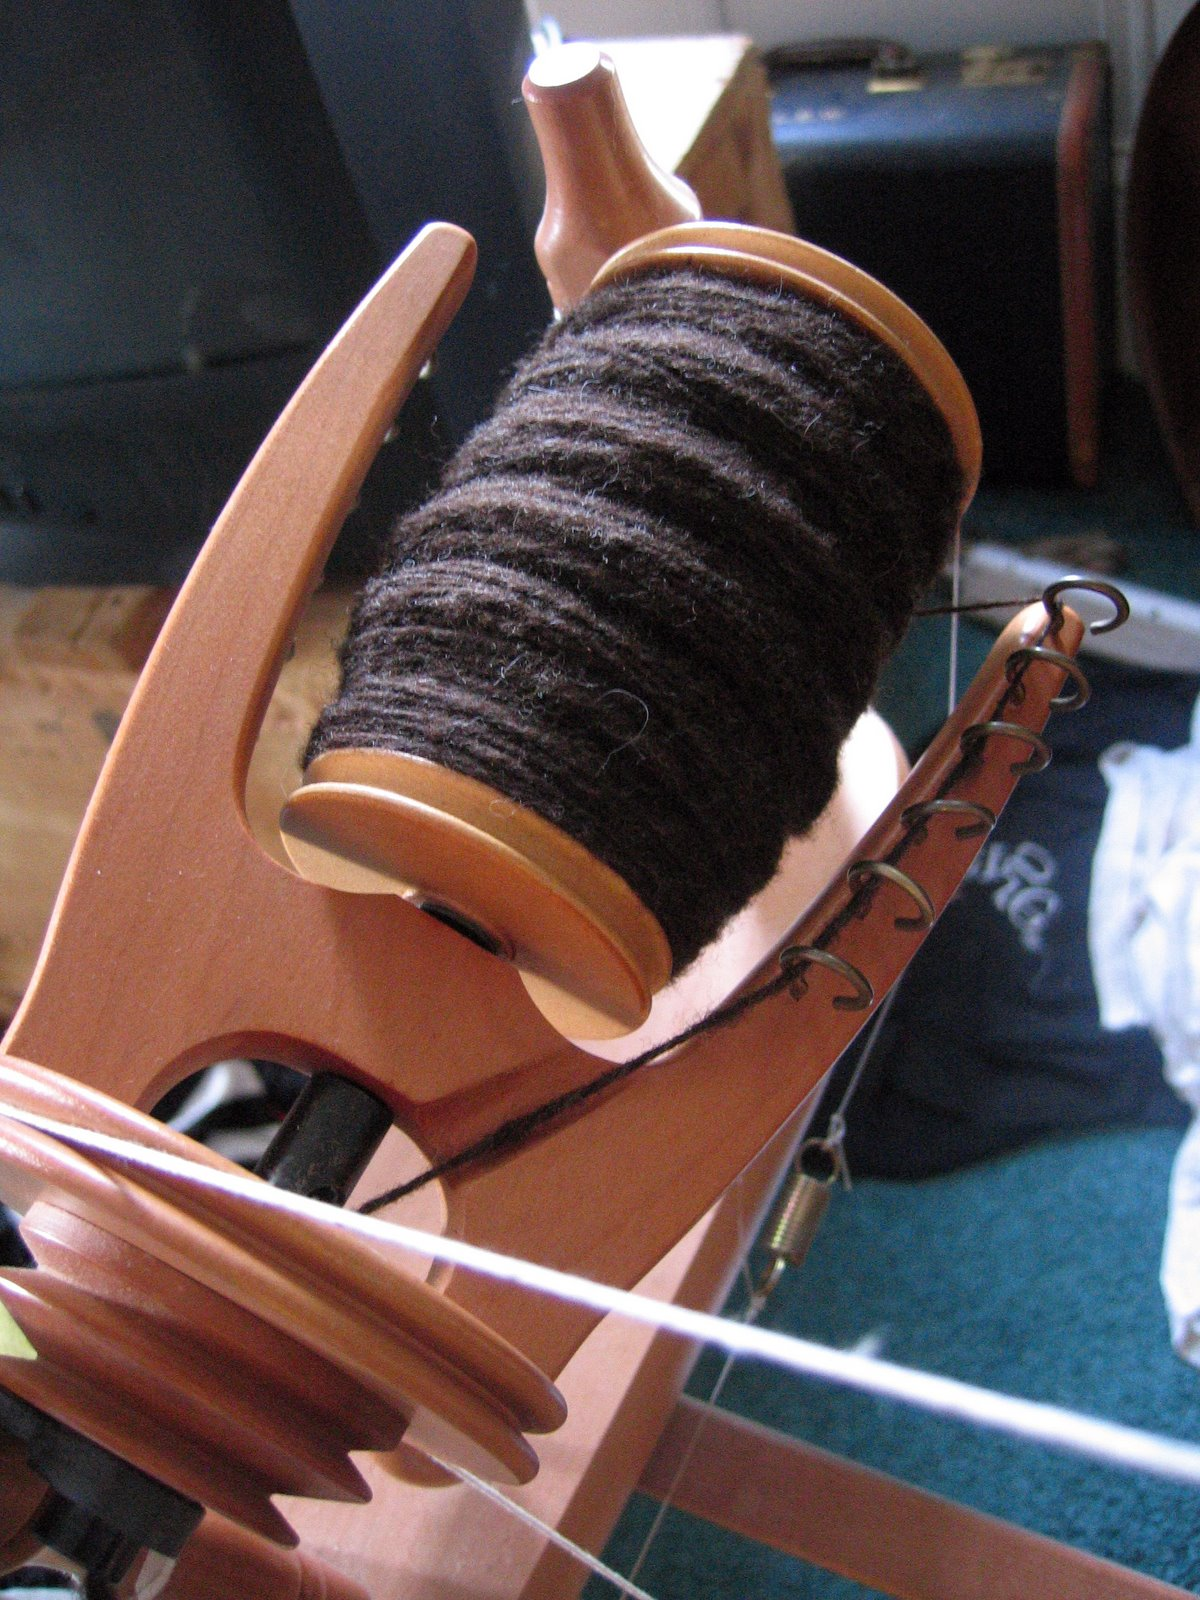 [Spinning+unknown+brown+wool+from+Australia.]